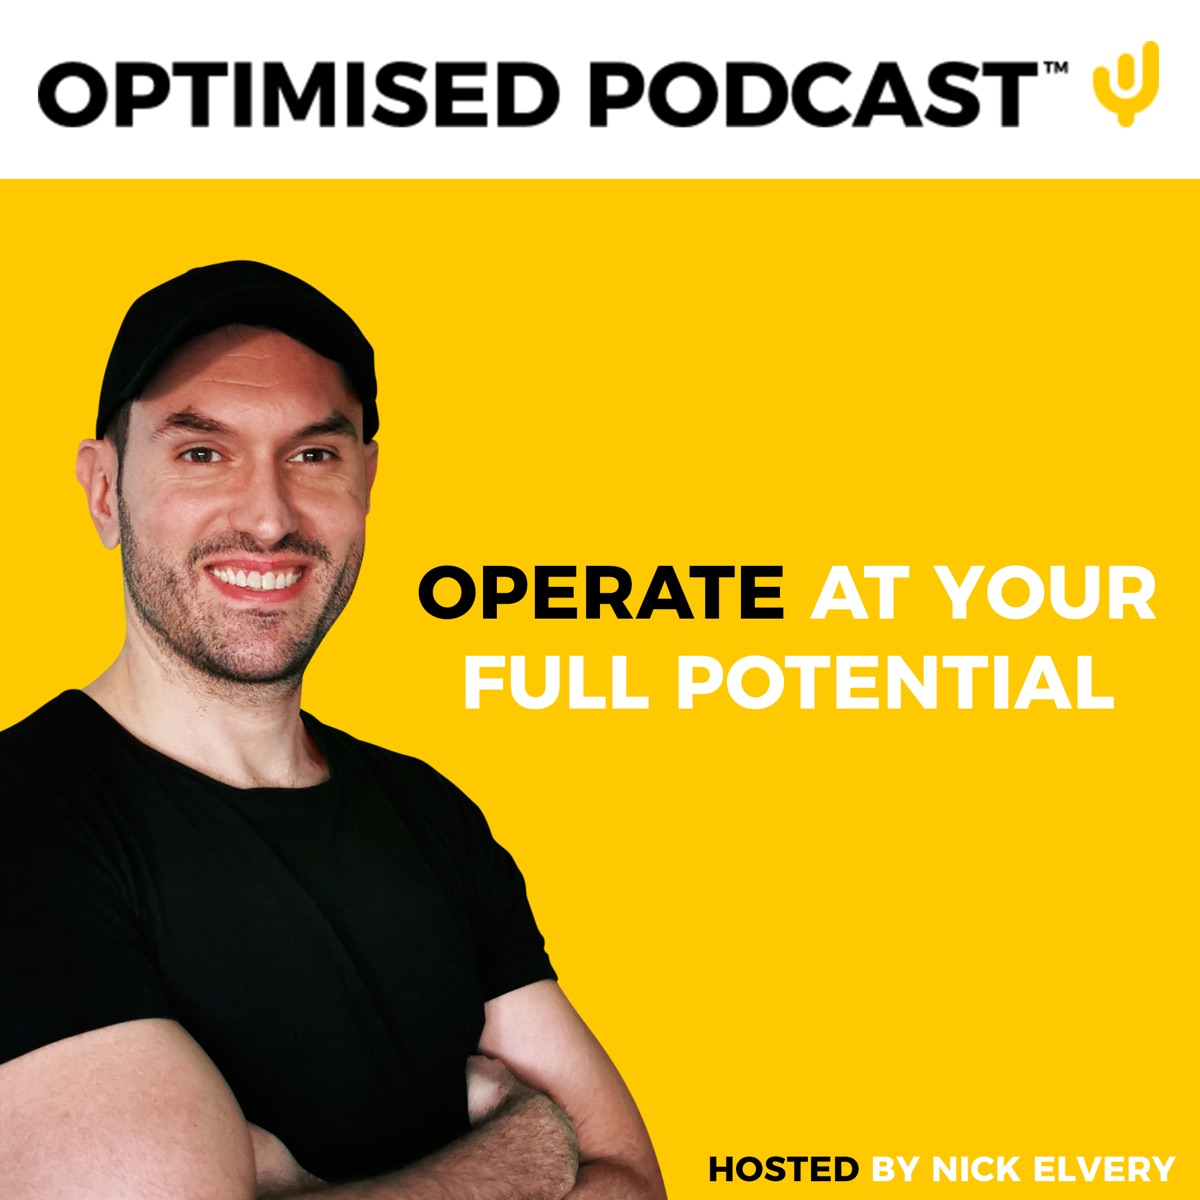 Optimised Podcast